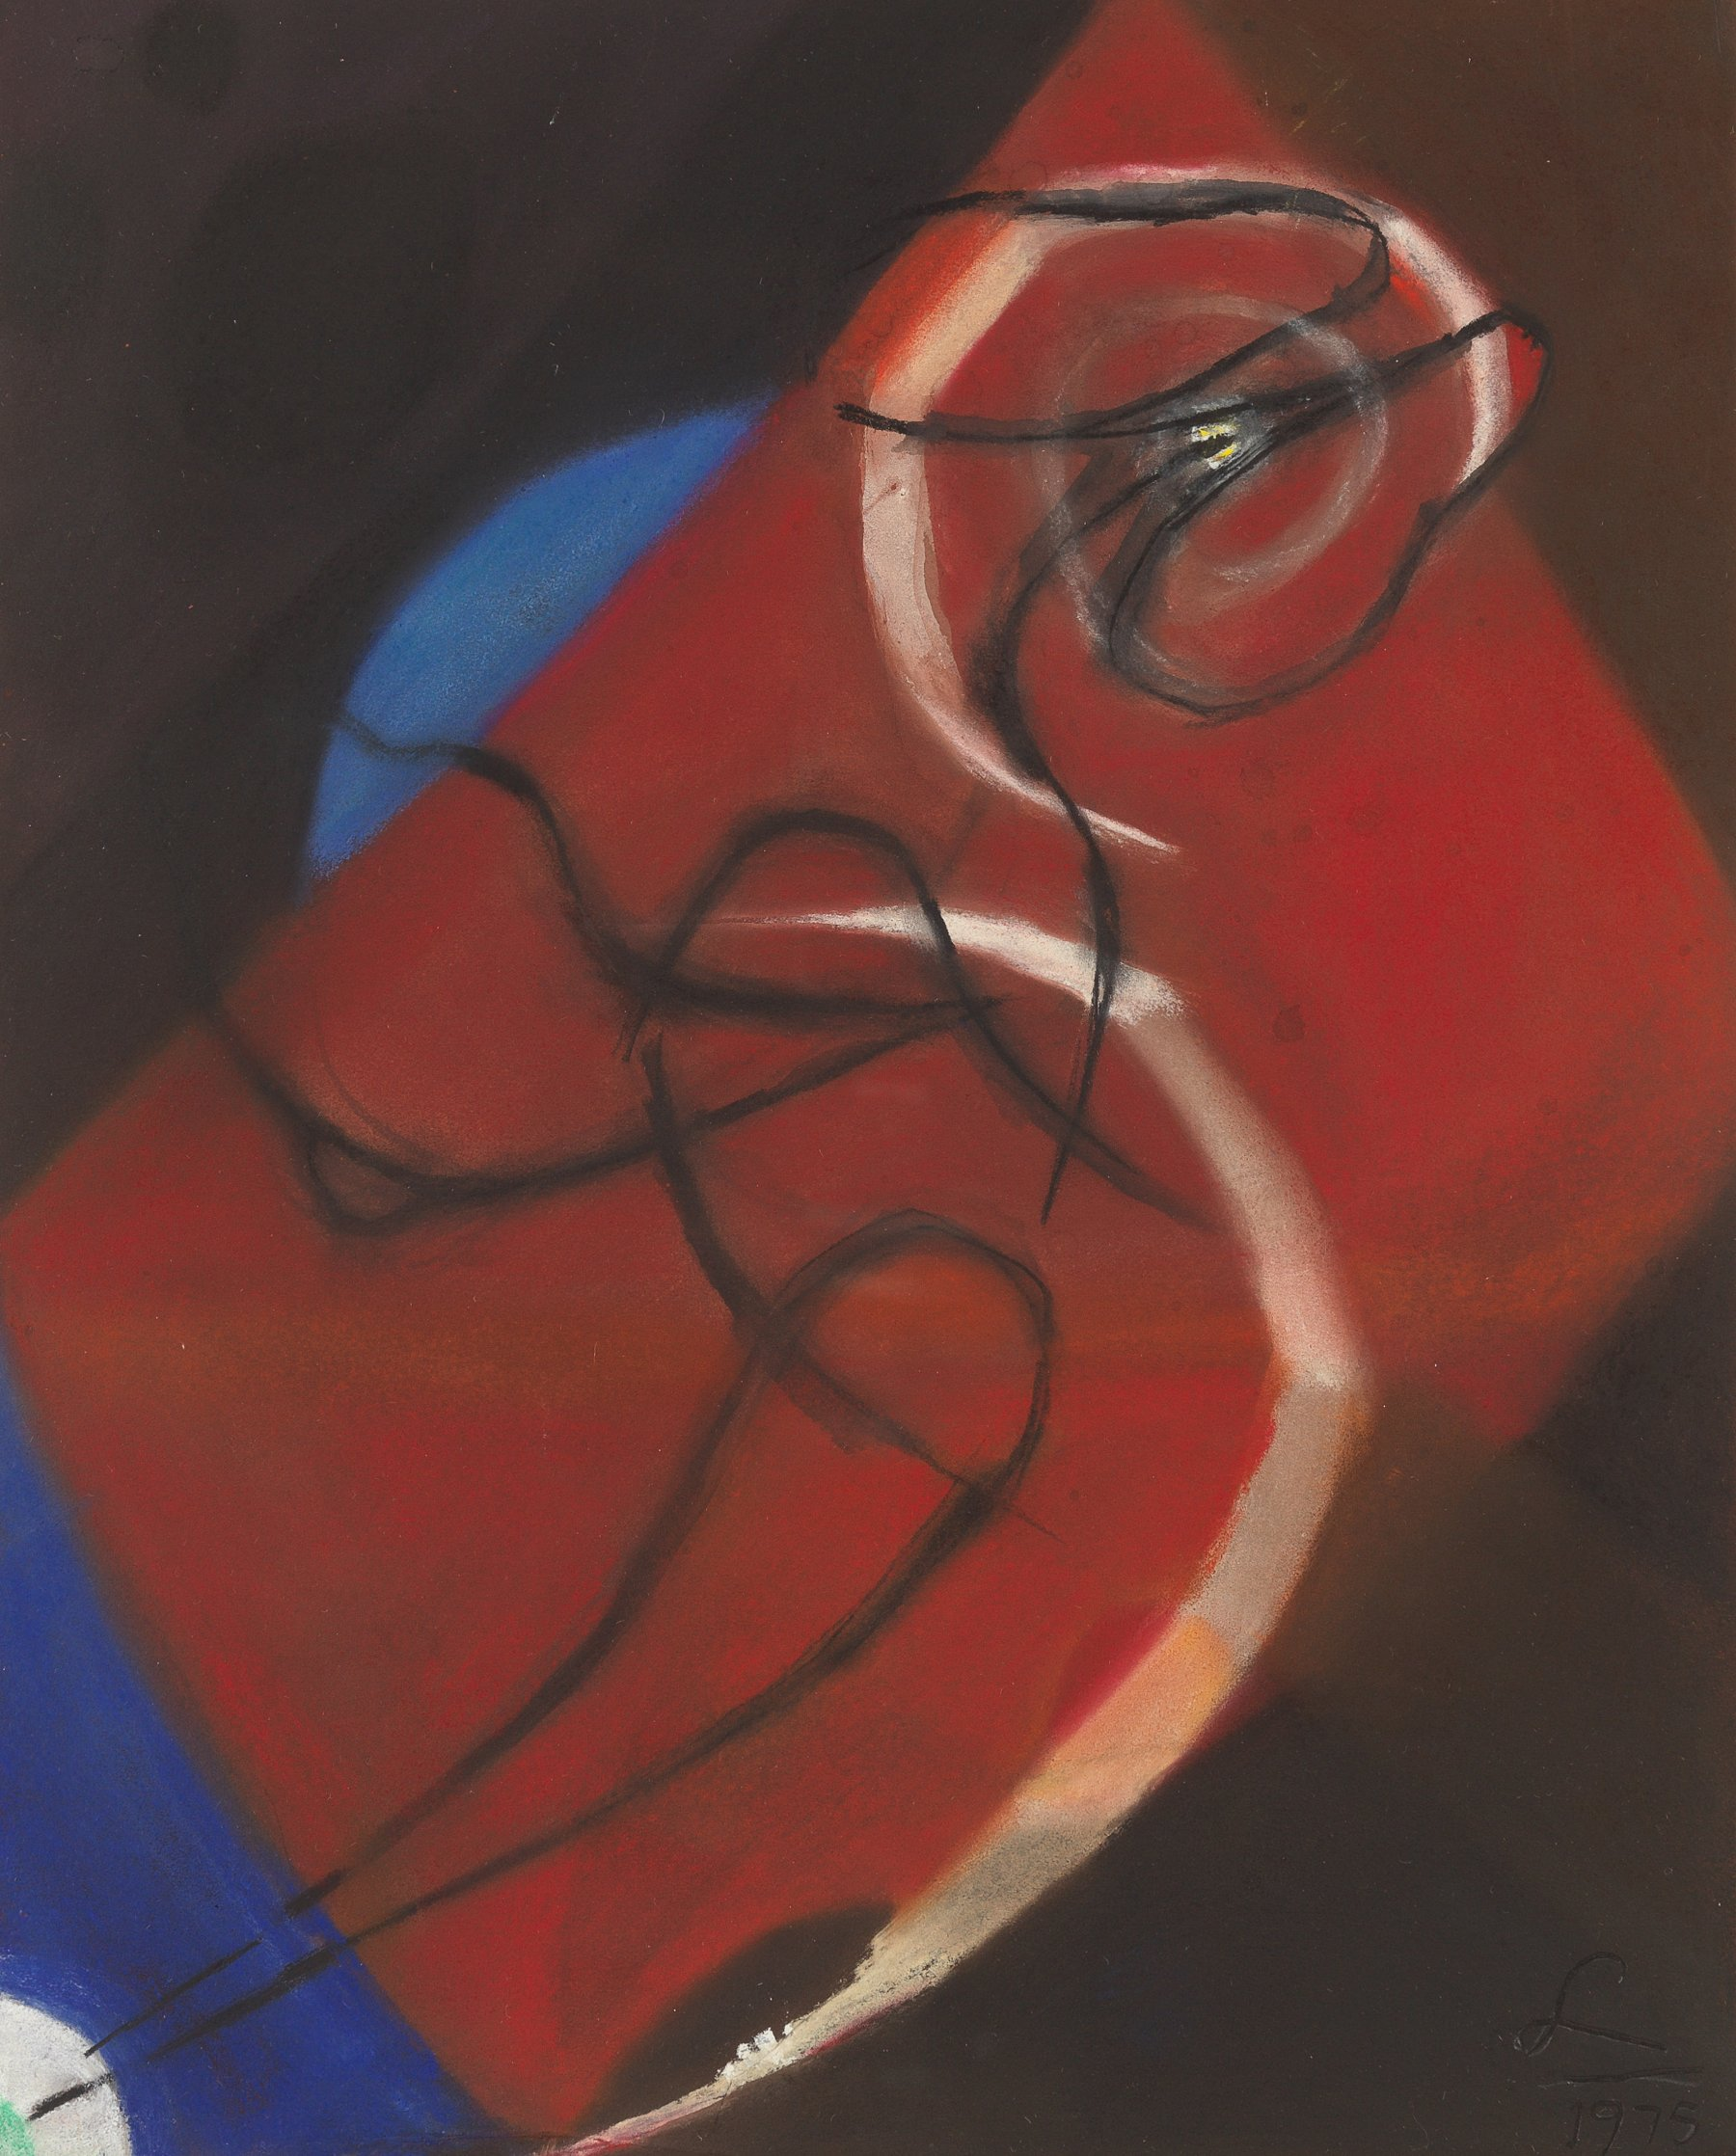 Pastel Study for Painting No. 3, 1975